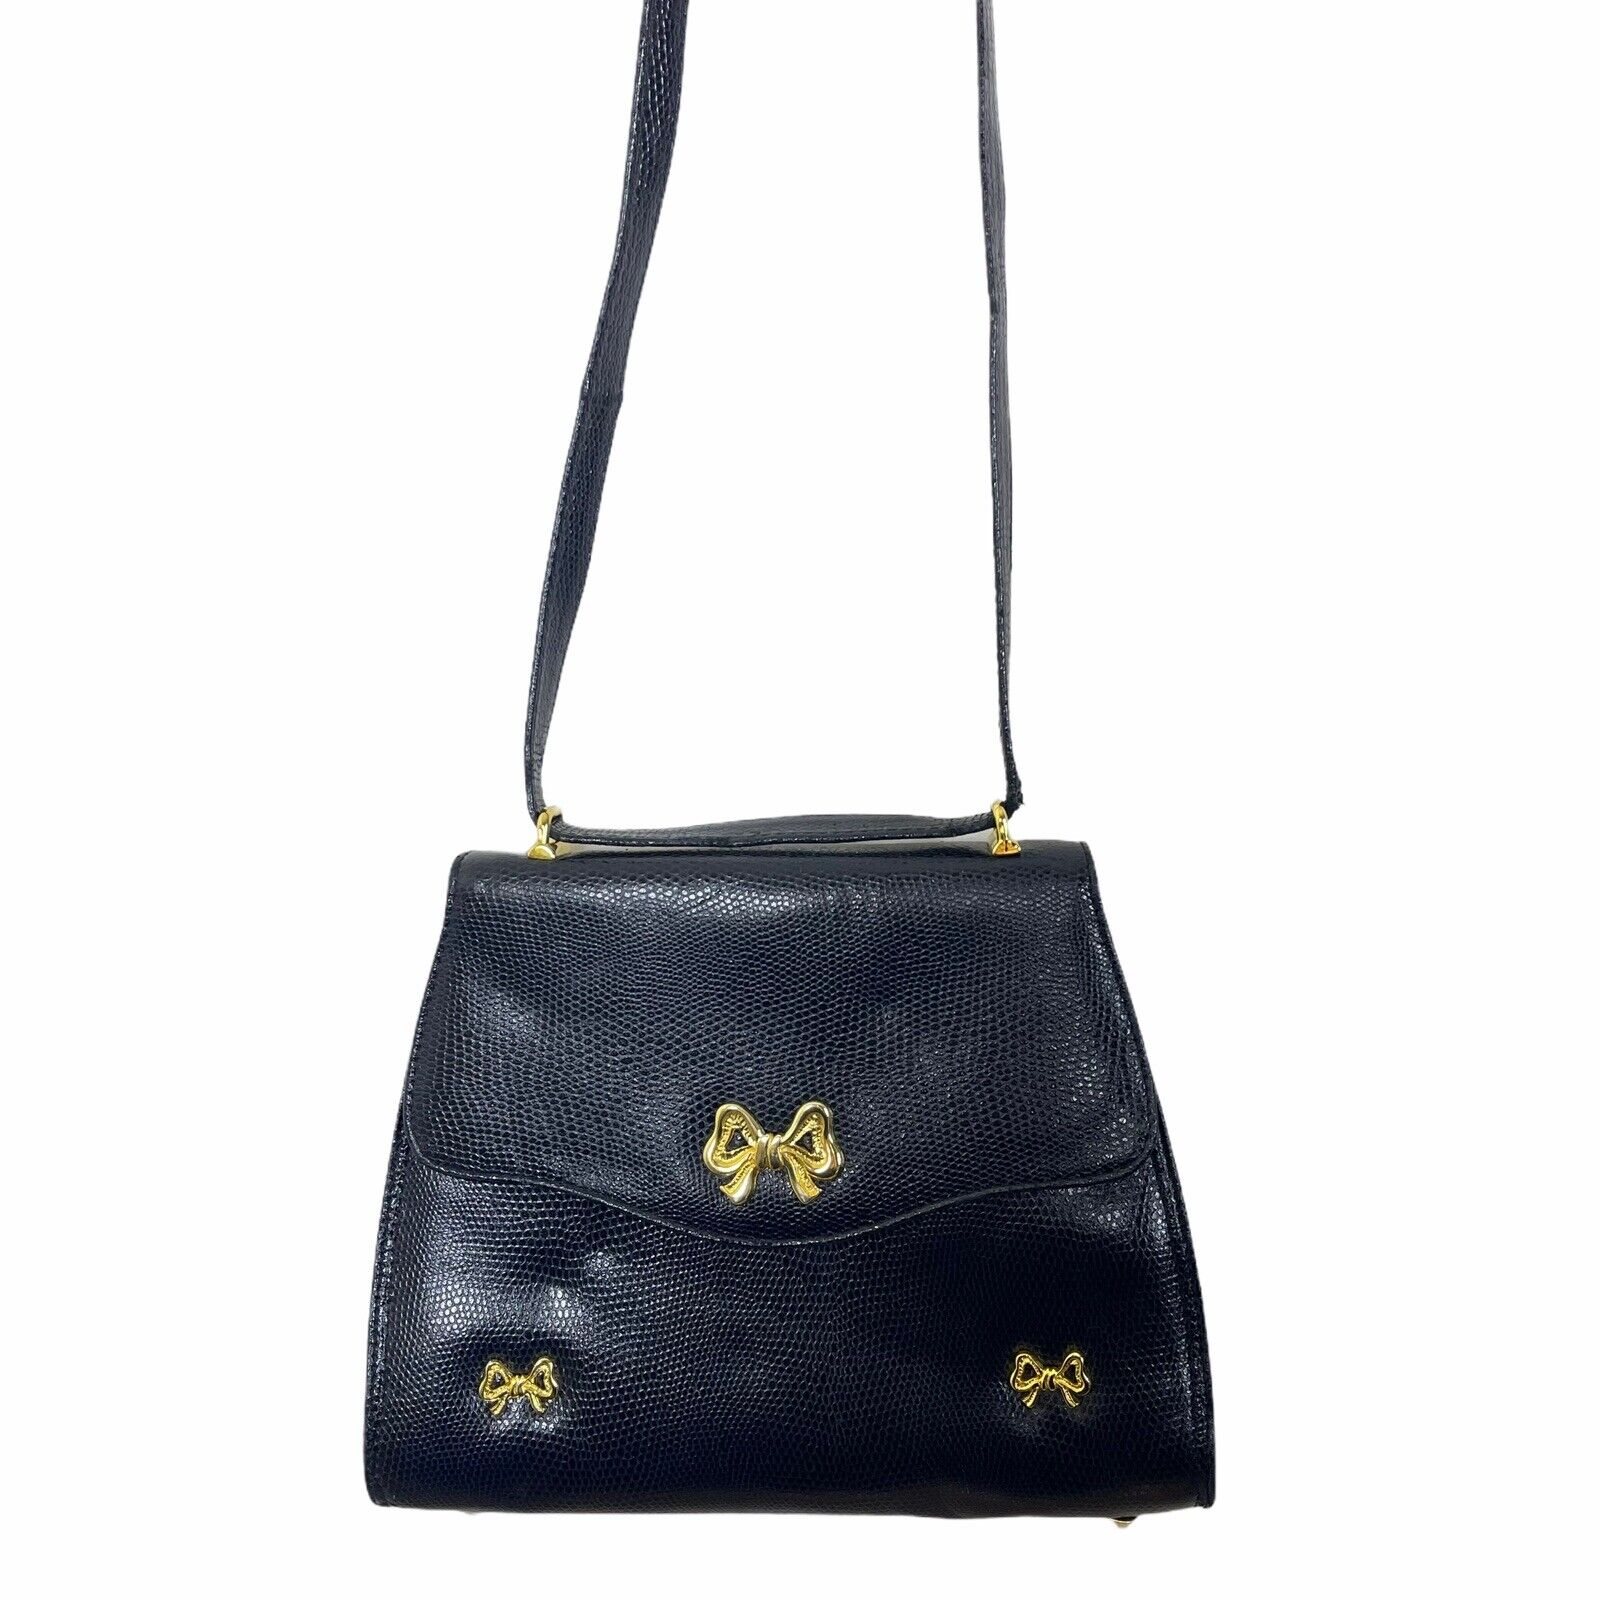 ARNOLD SCAASI NAVY LIZARD LEATHER WITH BOWS WOMEN… - image 7